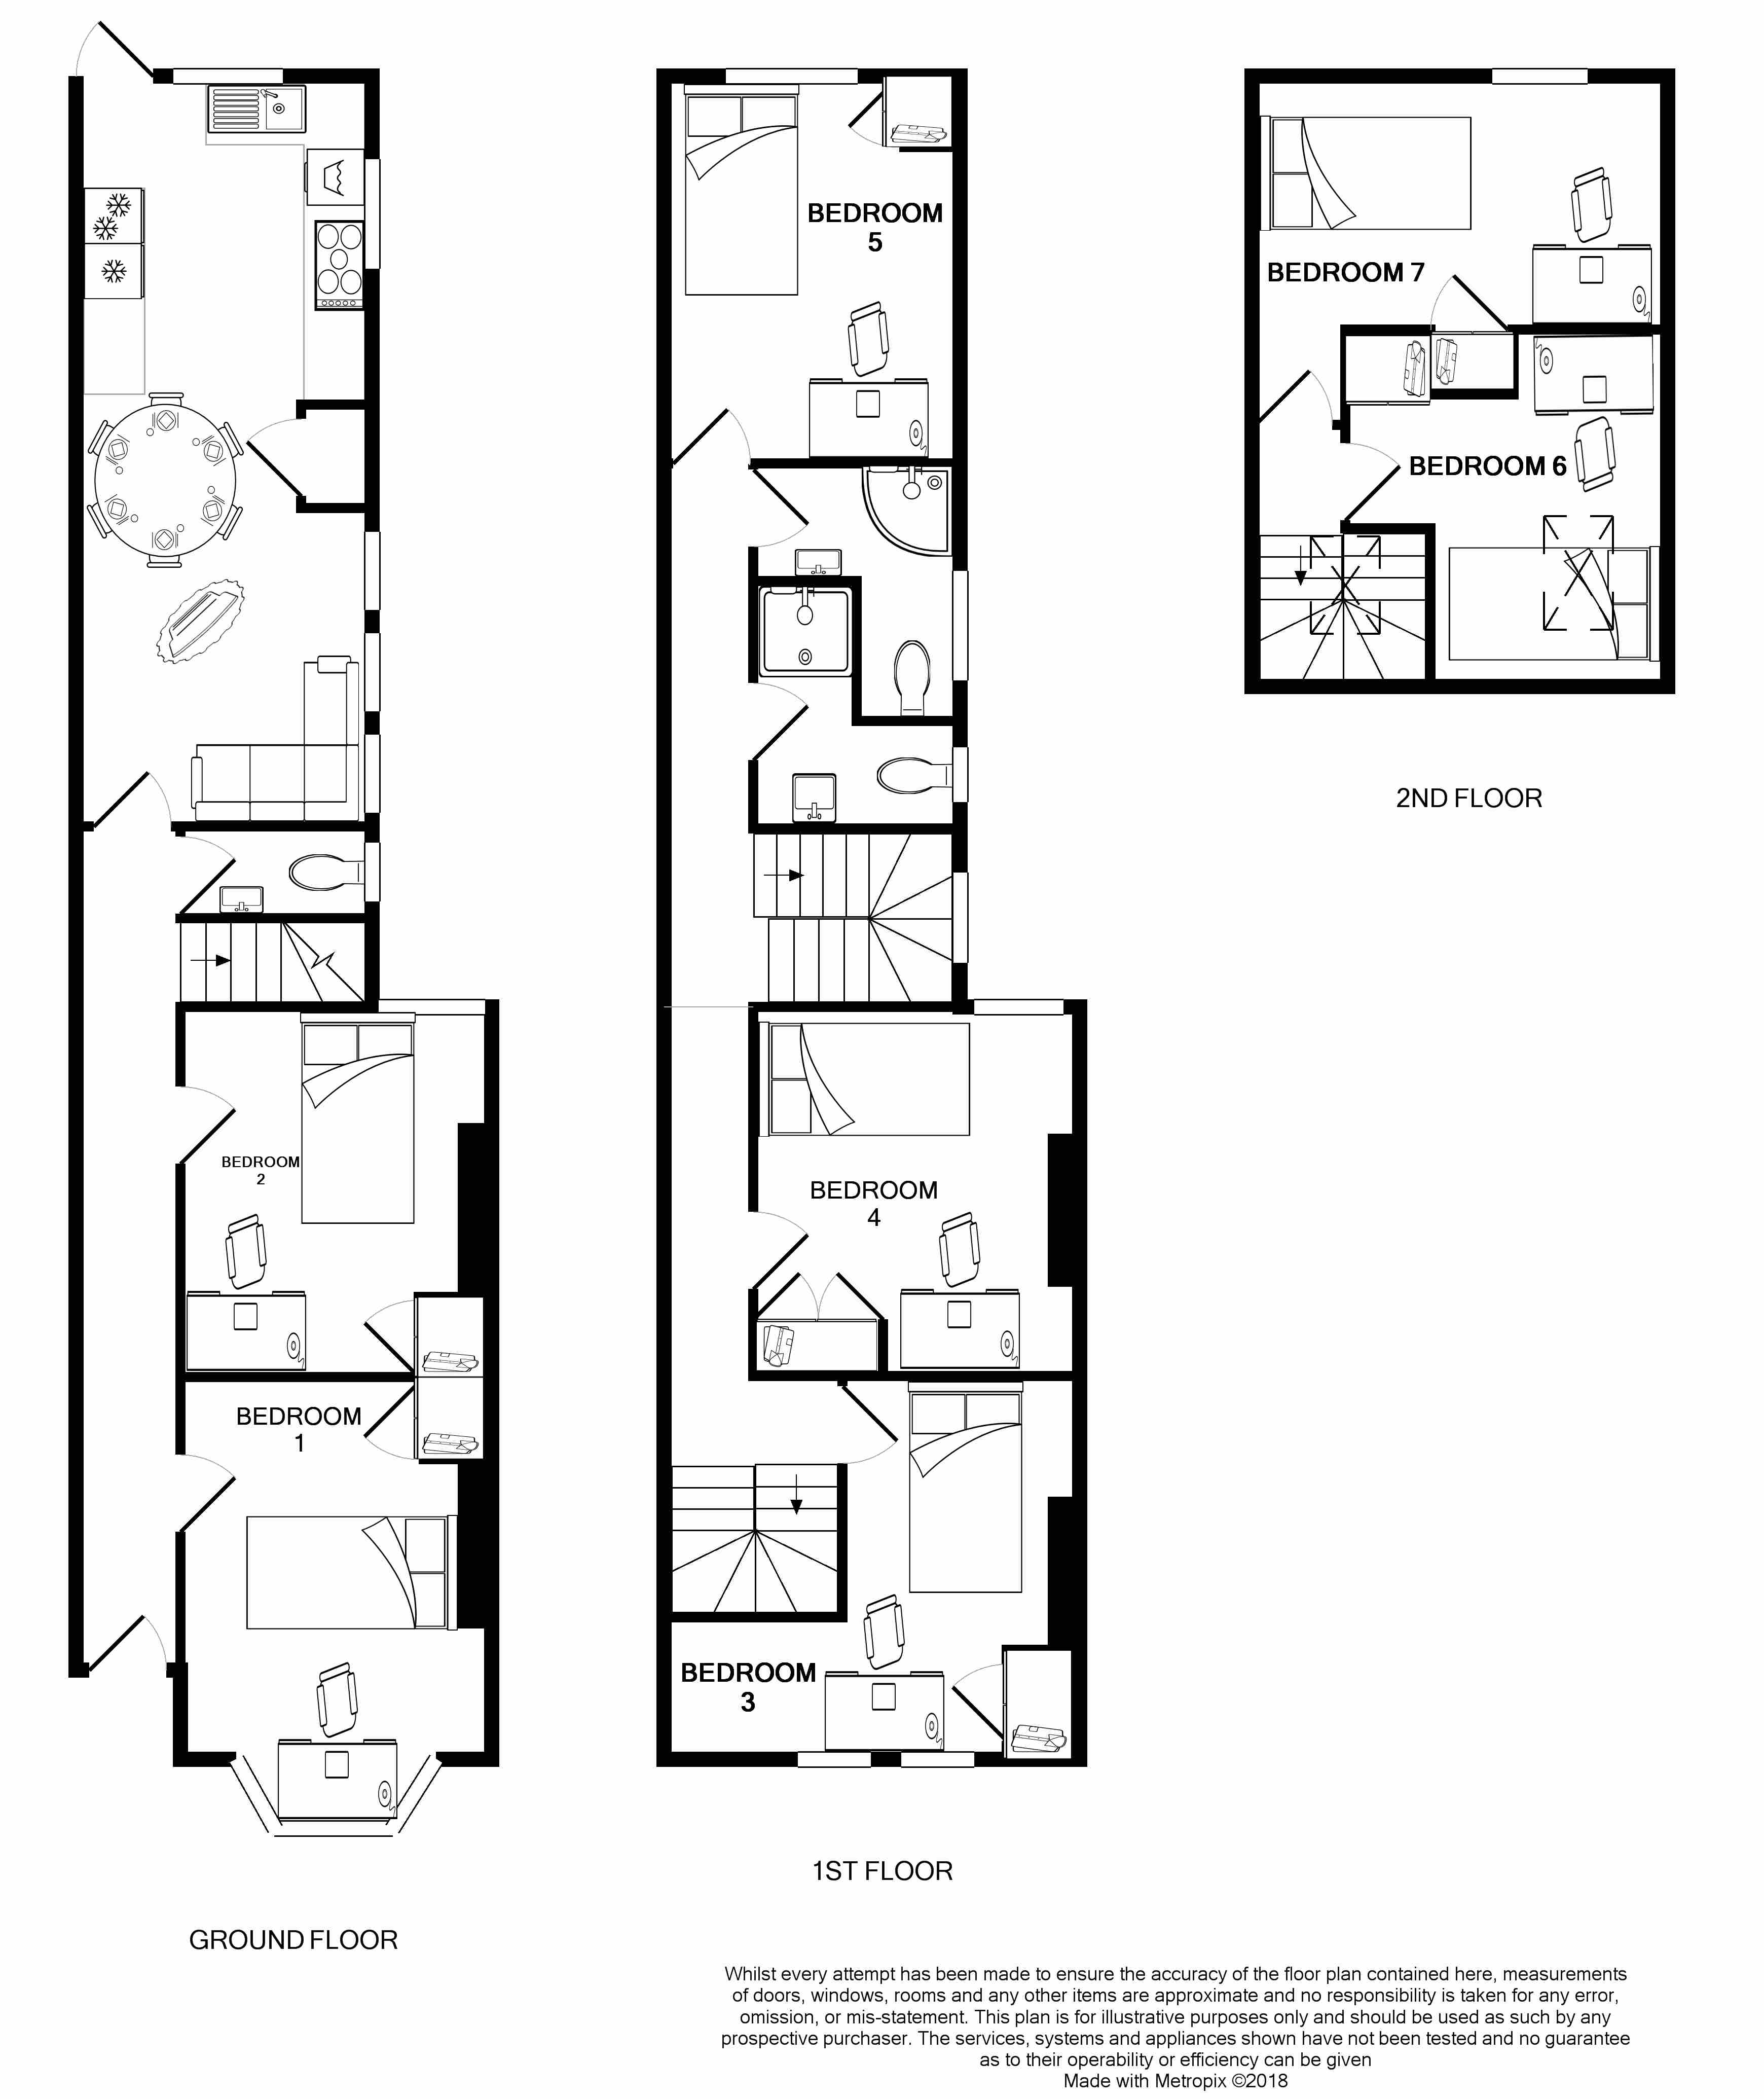 278 Fawcett Road - Floorplans